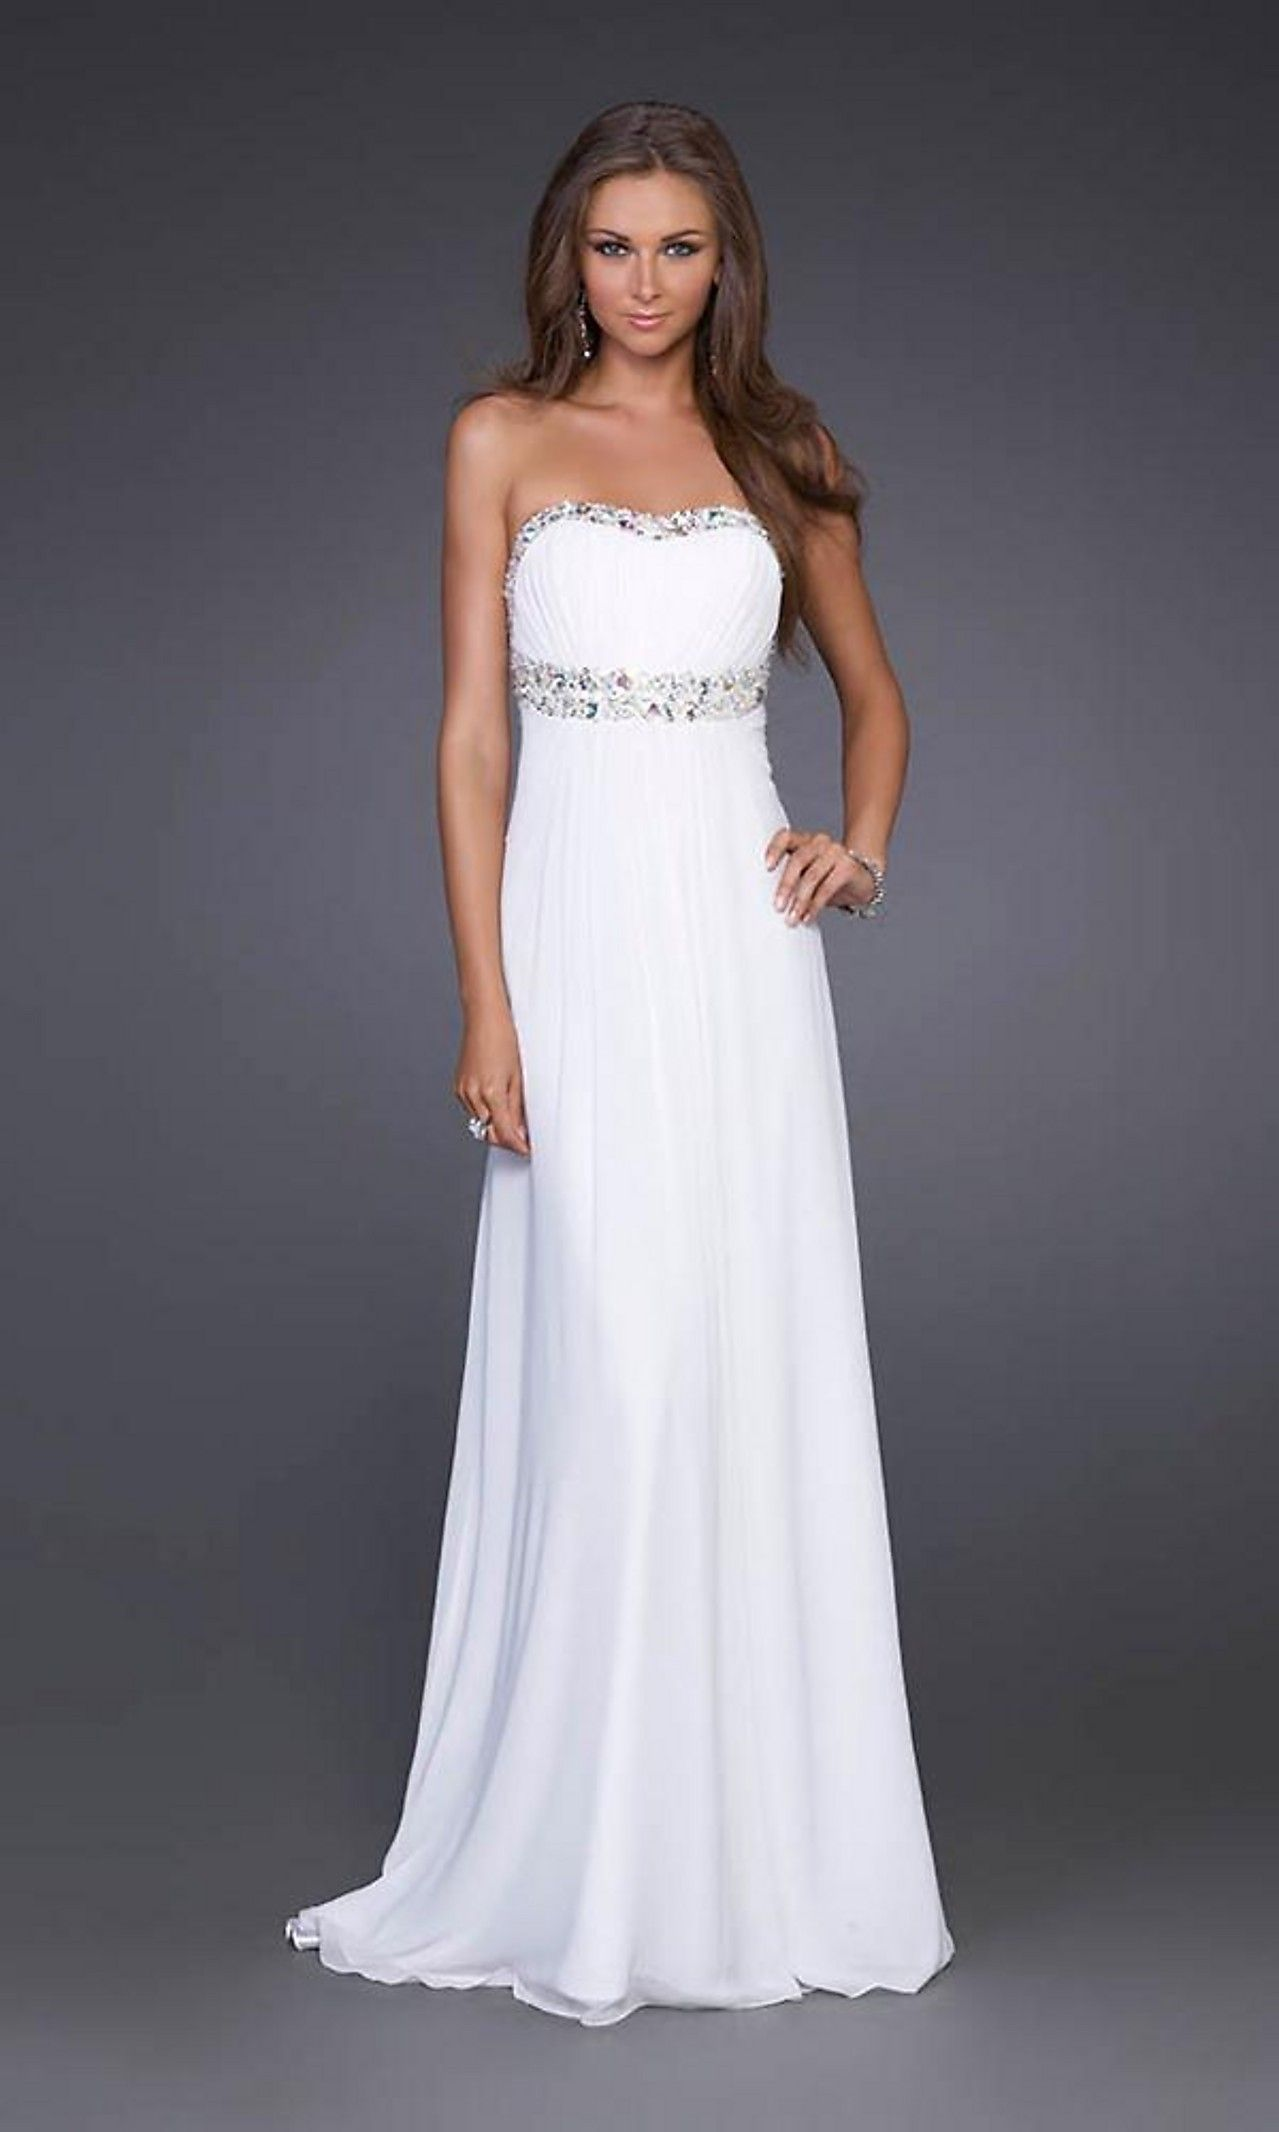 White Prom Dress La Femme, Strapless Long Gown - Simply Dresses ...